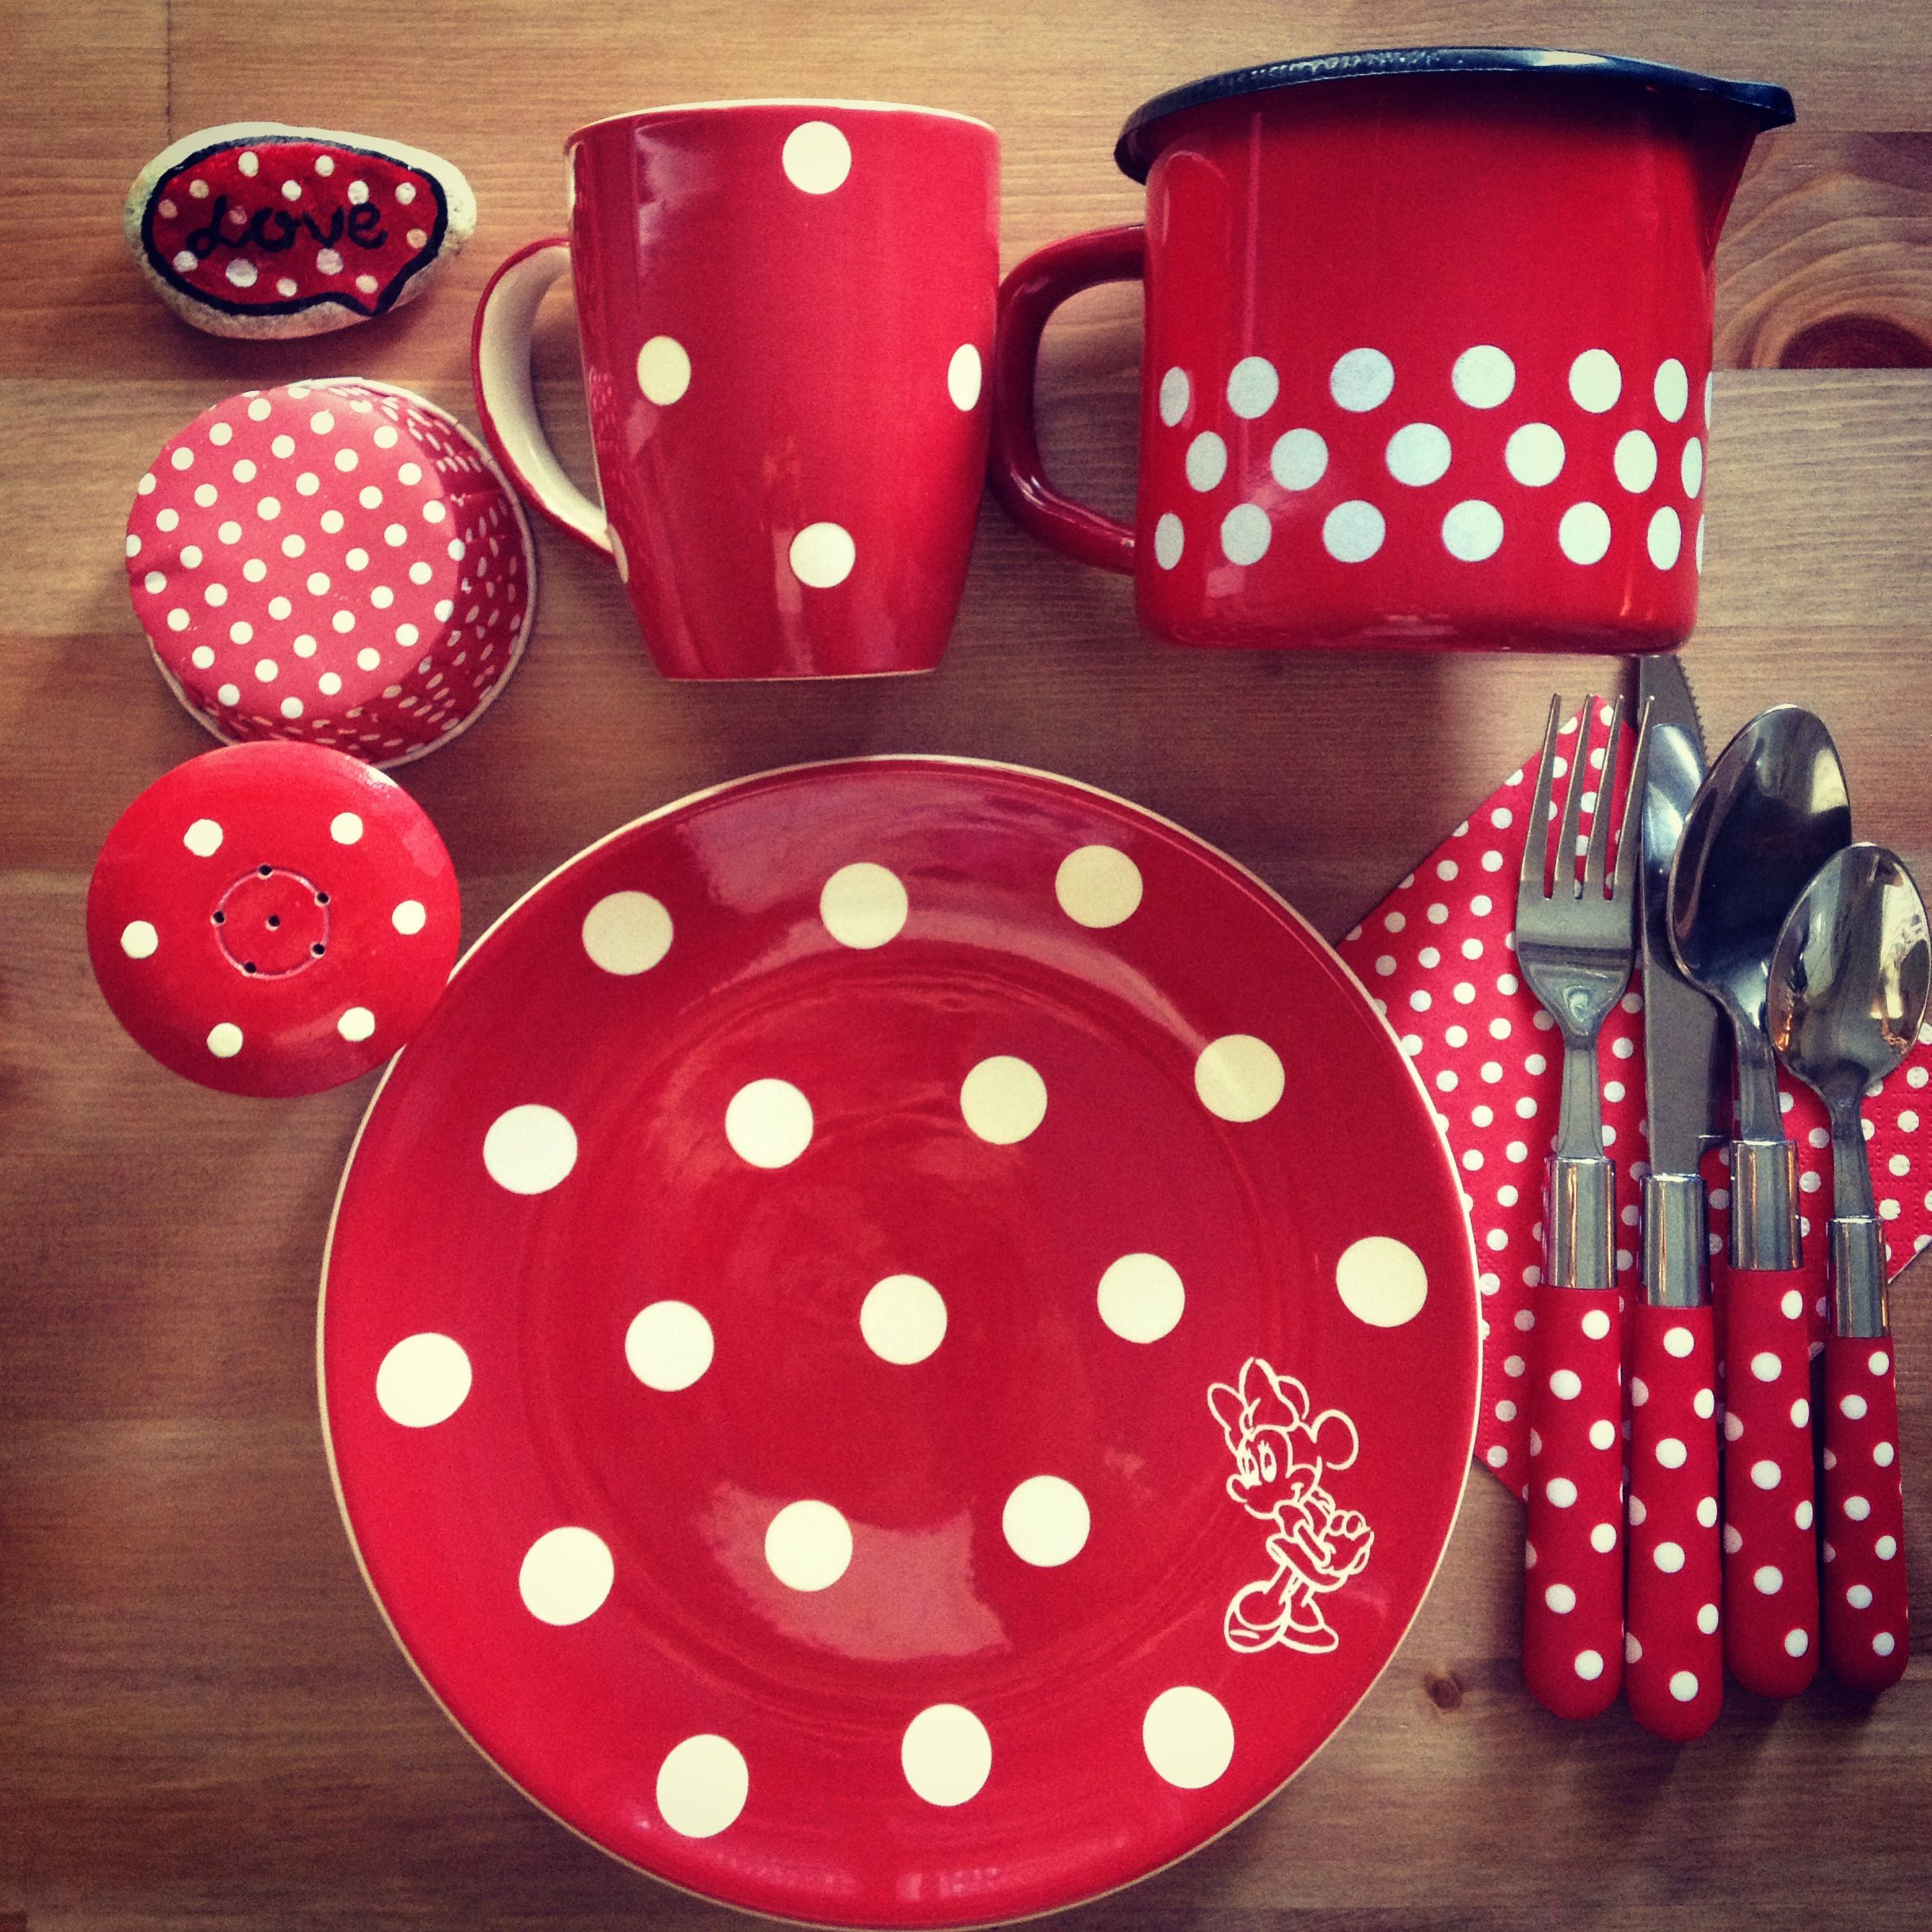 Behälter Küchenutensilien Polka Dots Love Stunning In Red And White Deko Rot Weiss